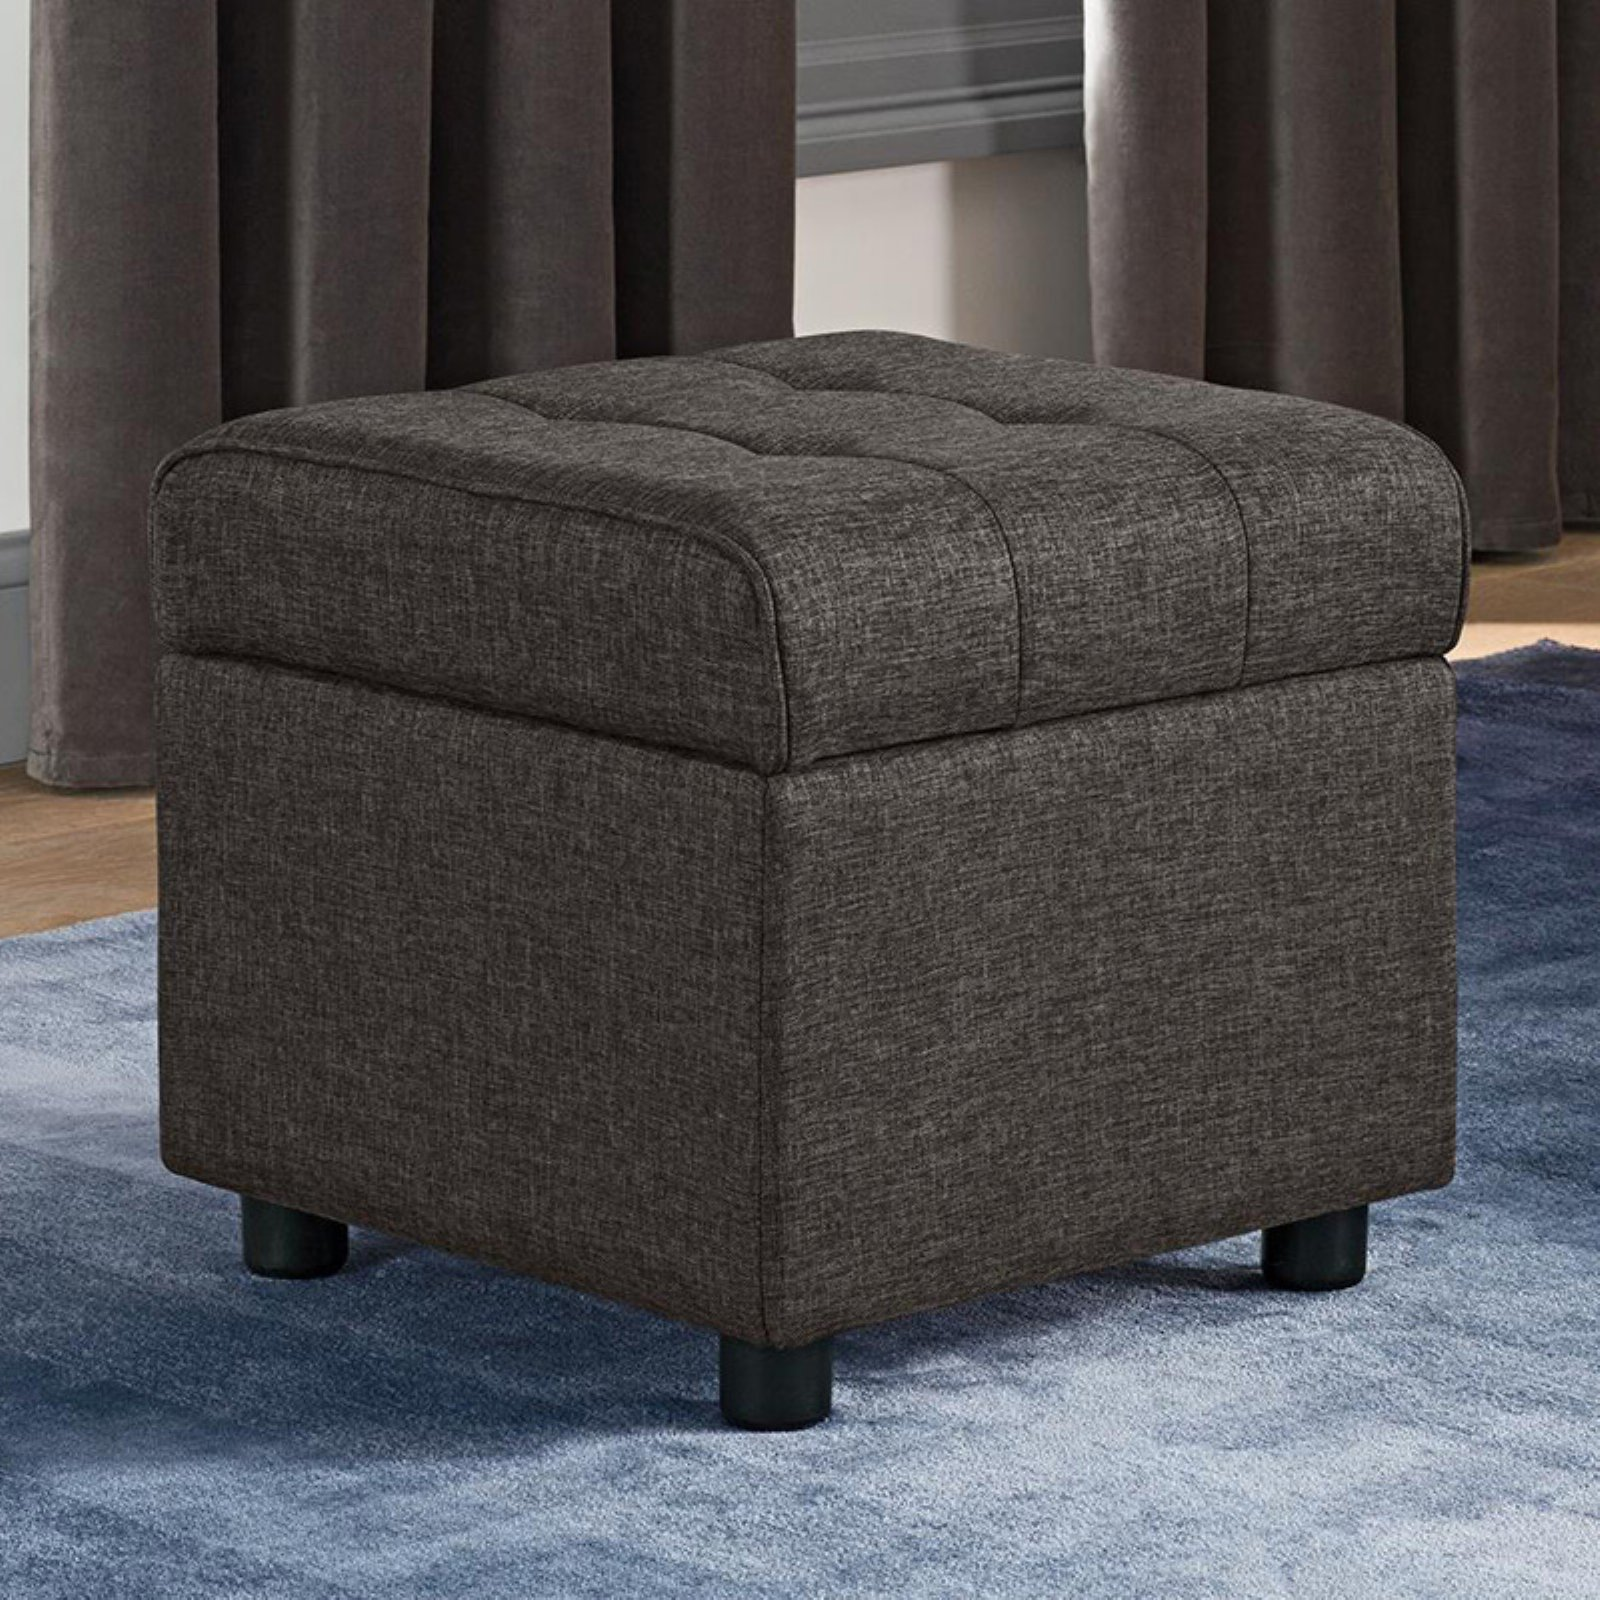 DHP Emily Square Tufted Storage Ottoman, Available in Various Colors